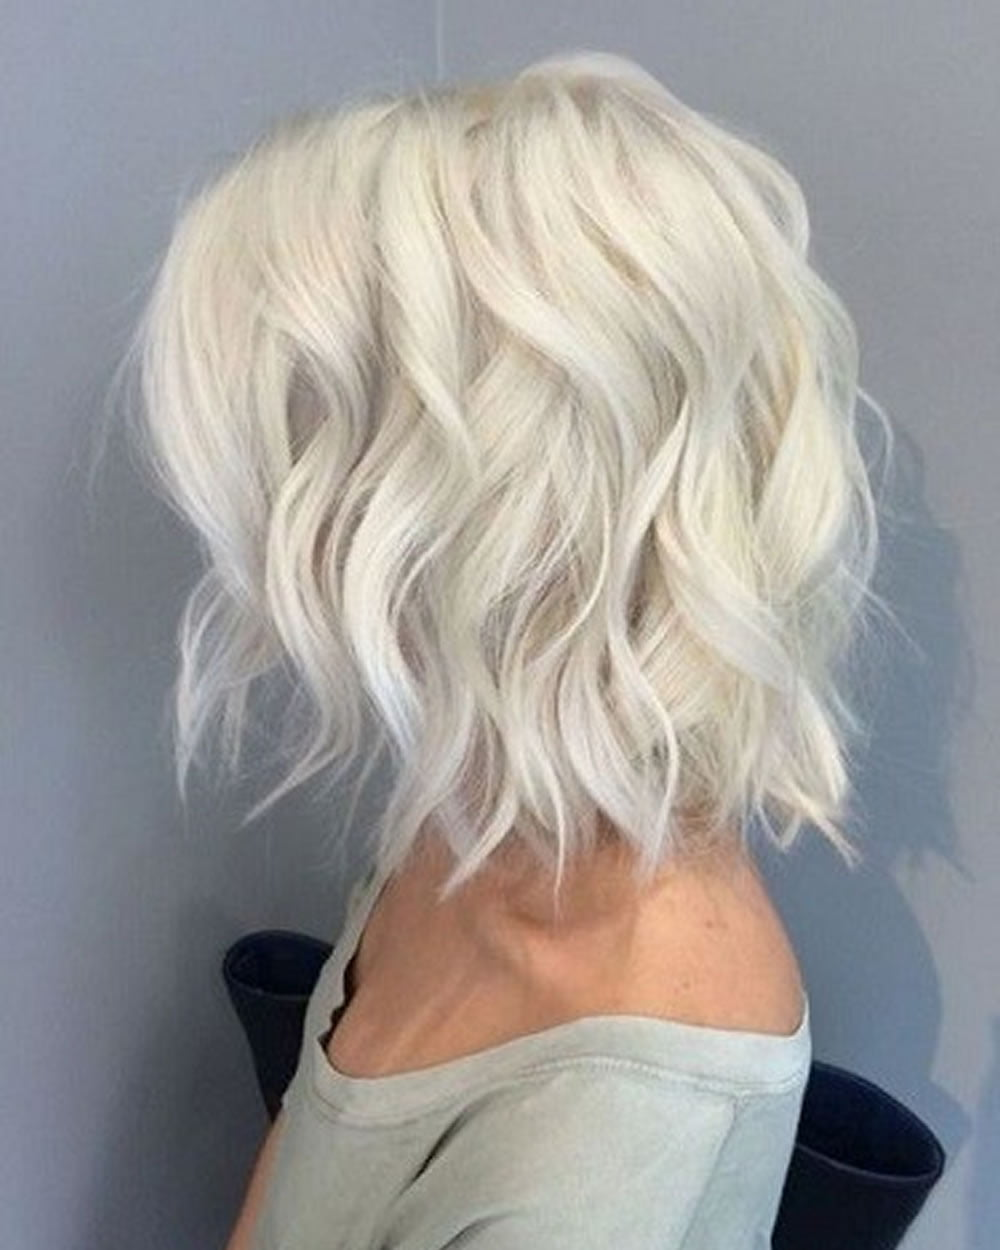 balayage ombre highlights 2018 dark brunette blonde etc hair ideas page 3 hairstyles. Black Bedroom Furniture Sets. Home Design Ideas